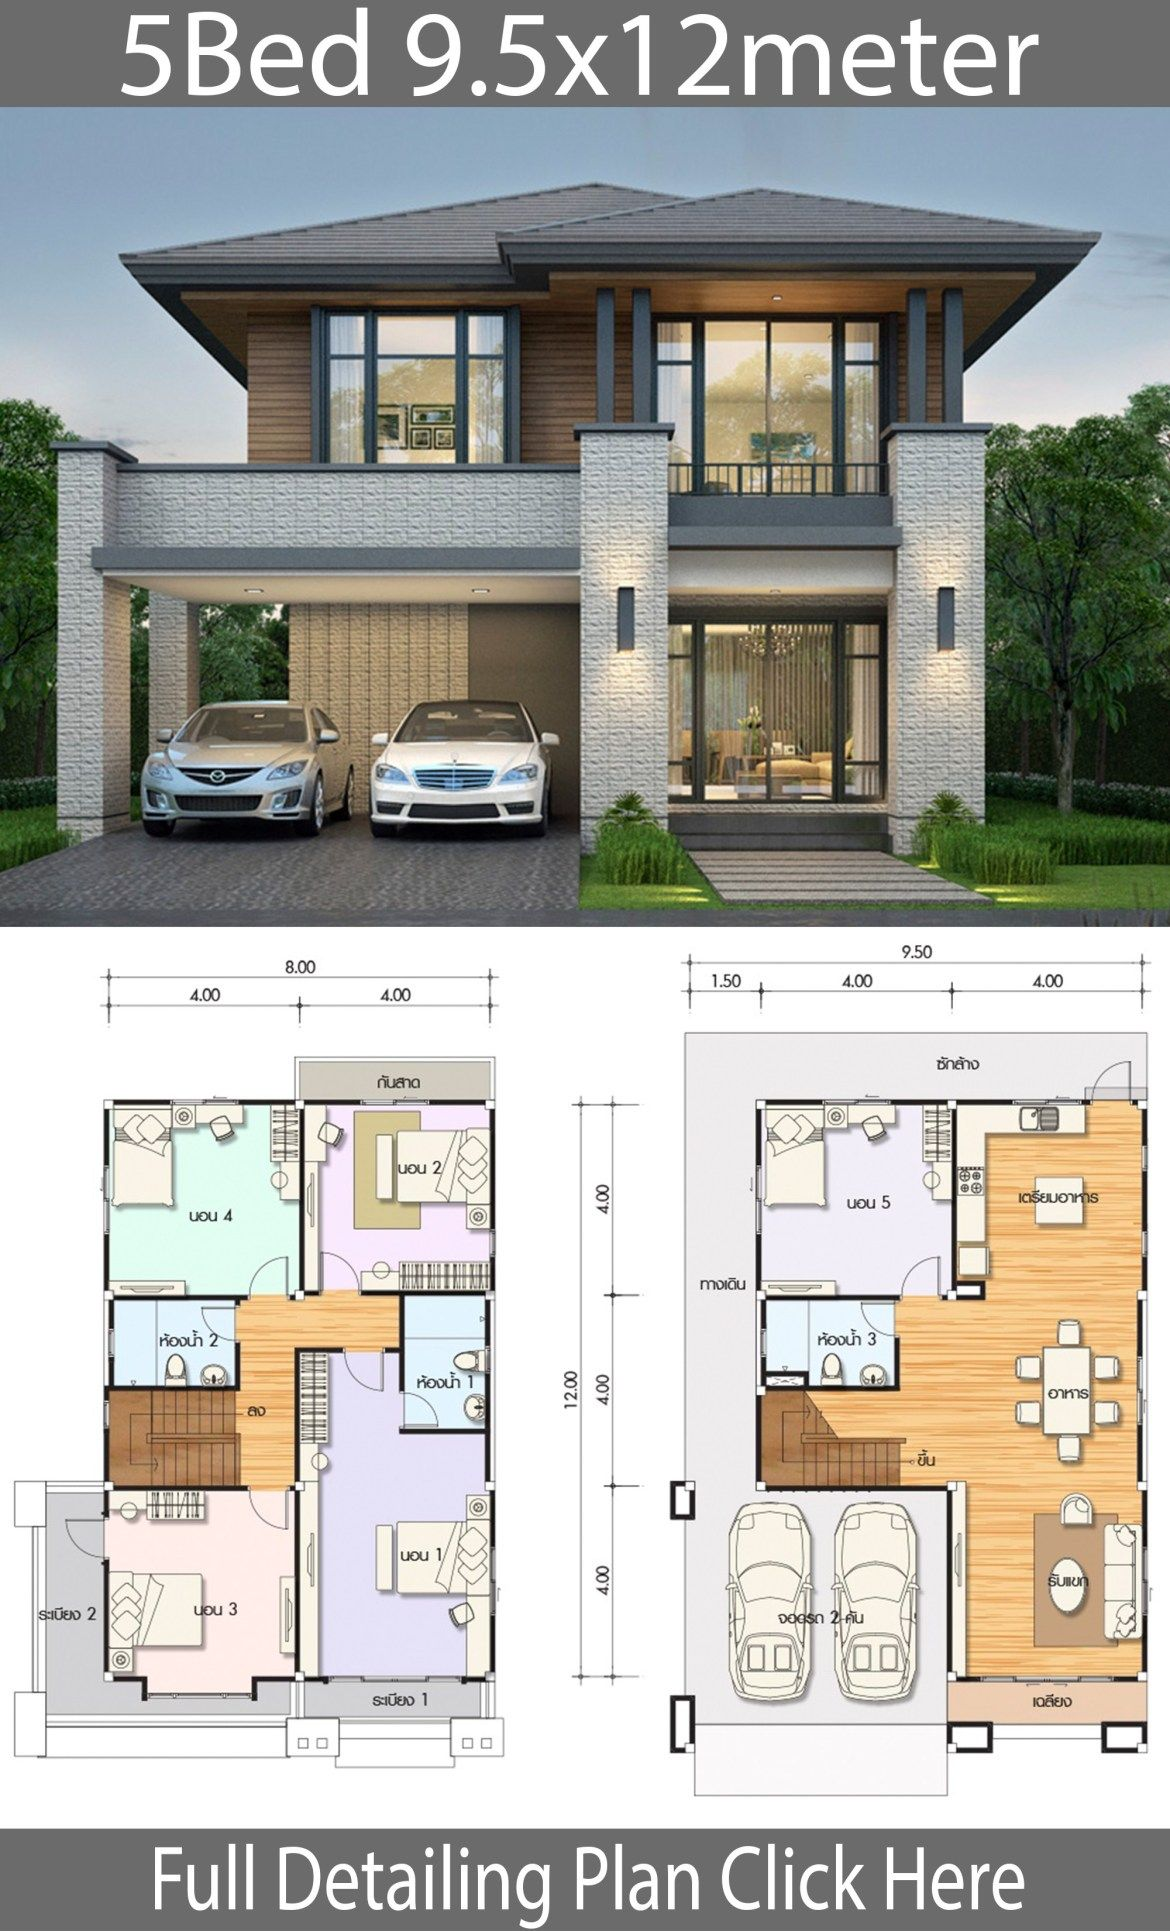 House design plan 9.5x12m with 5 bedrooms #hausdesign